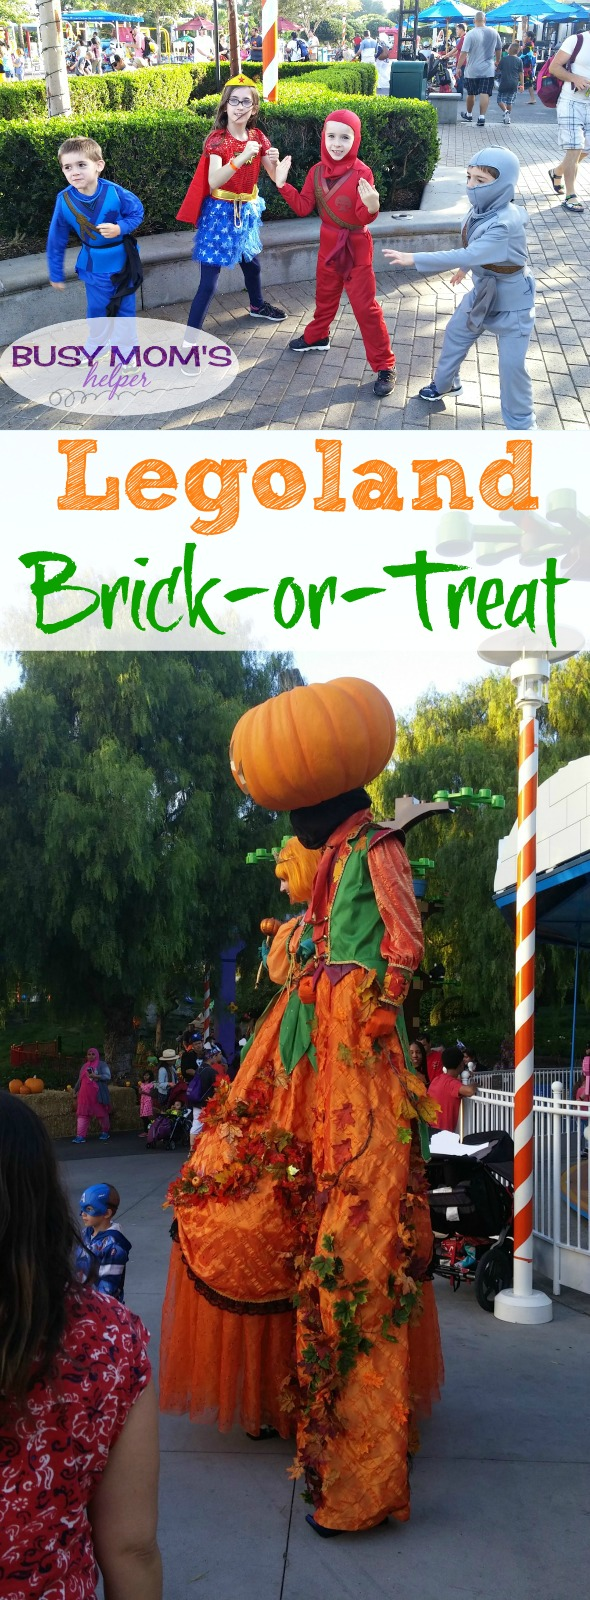 Legoland Brick-or-Treat